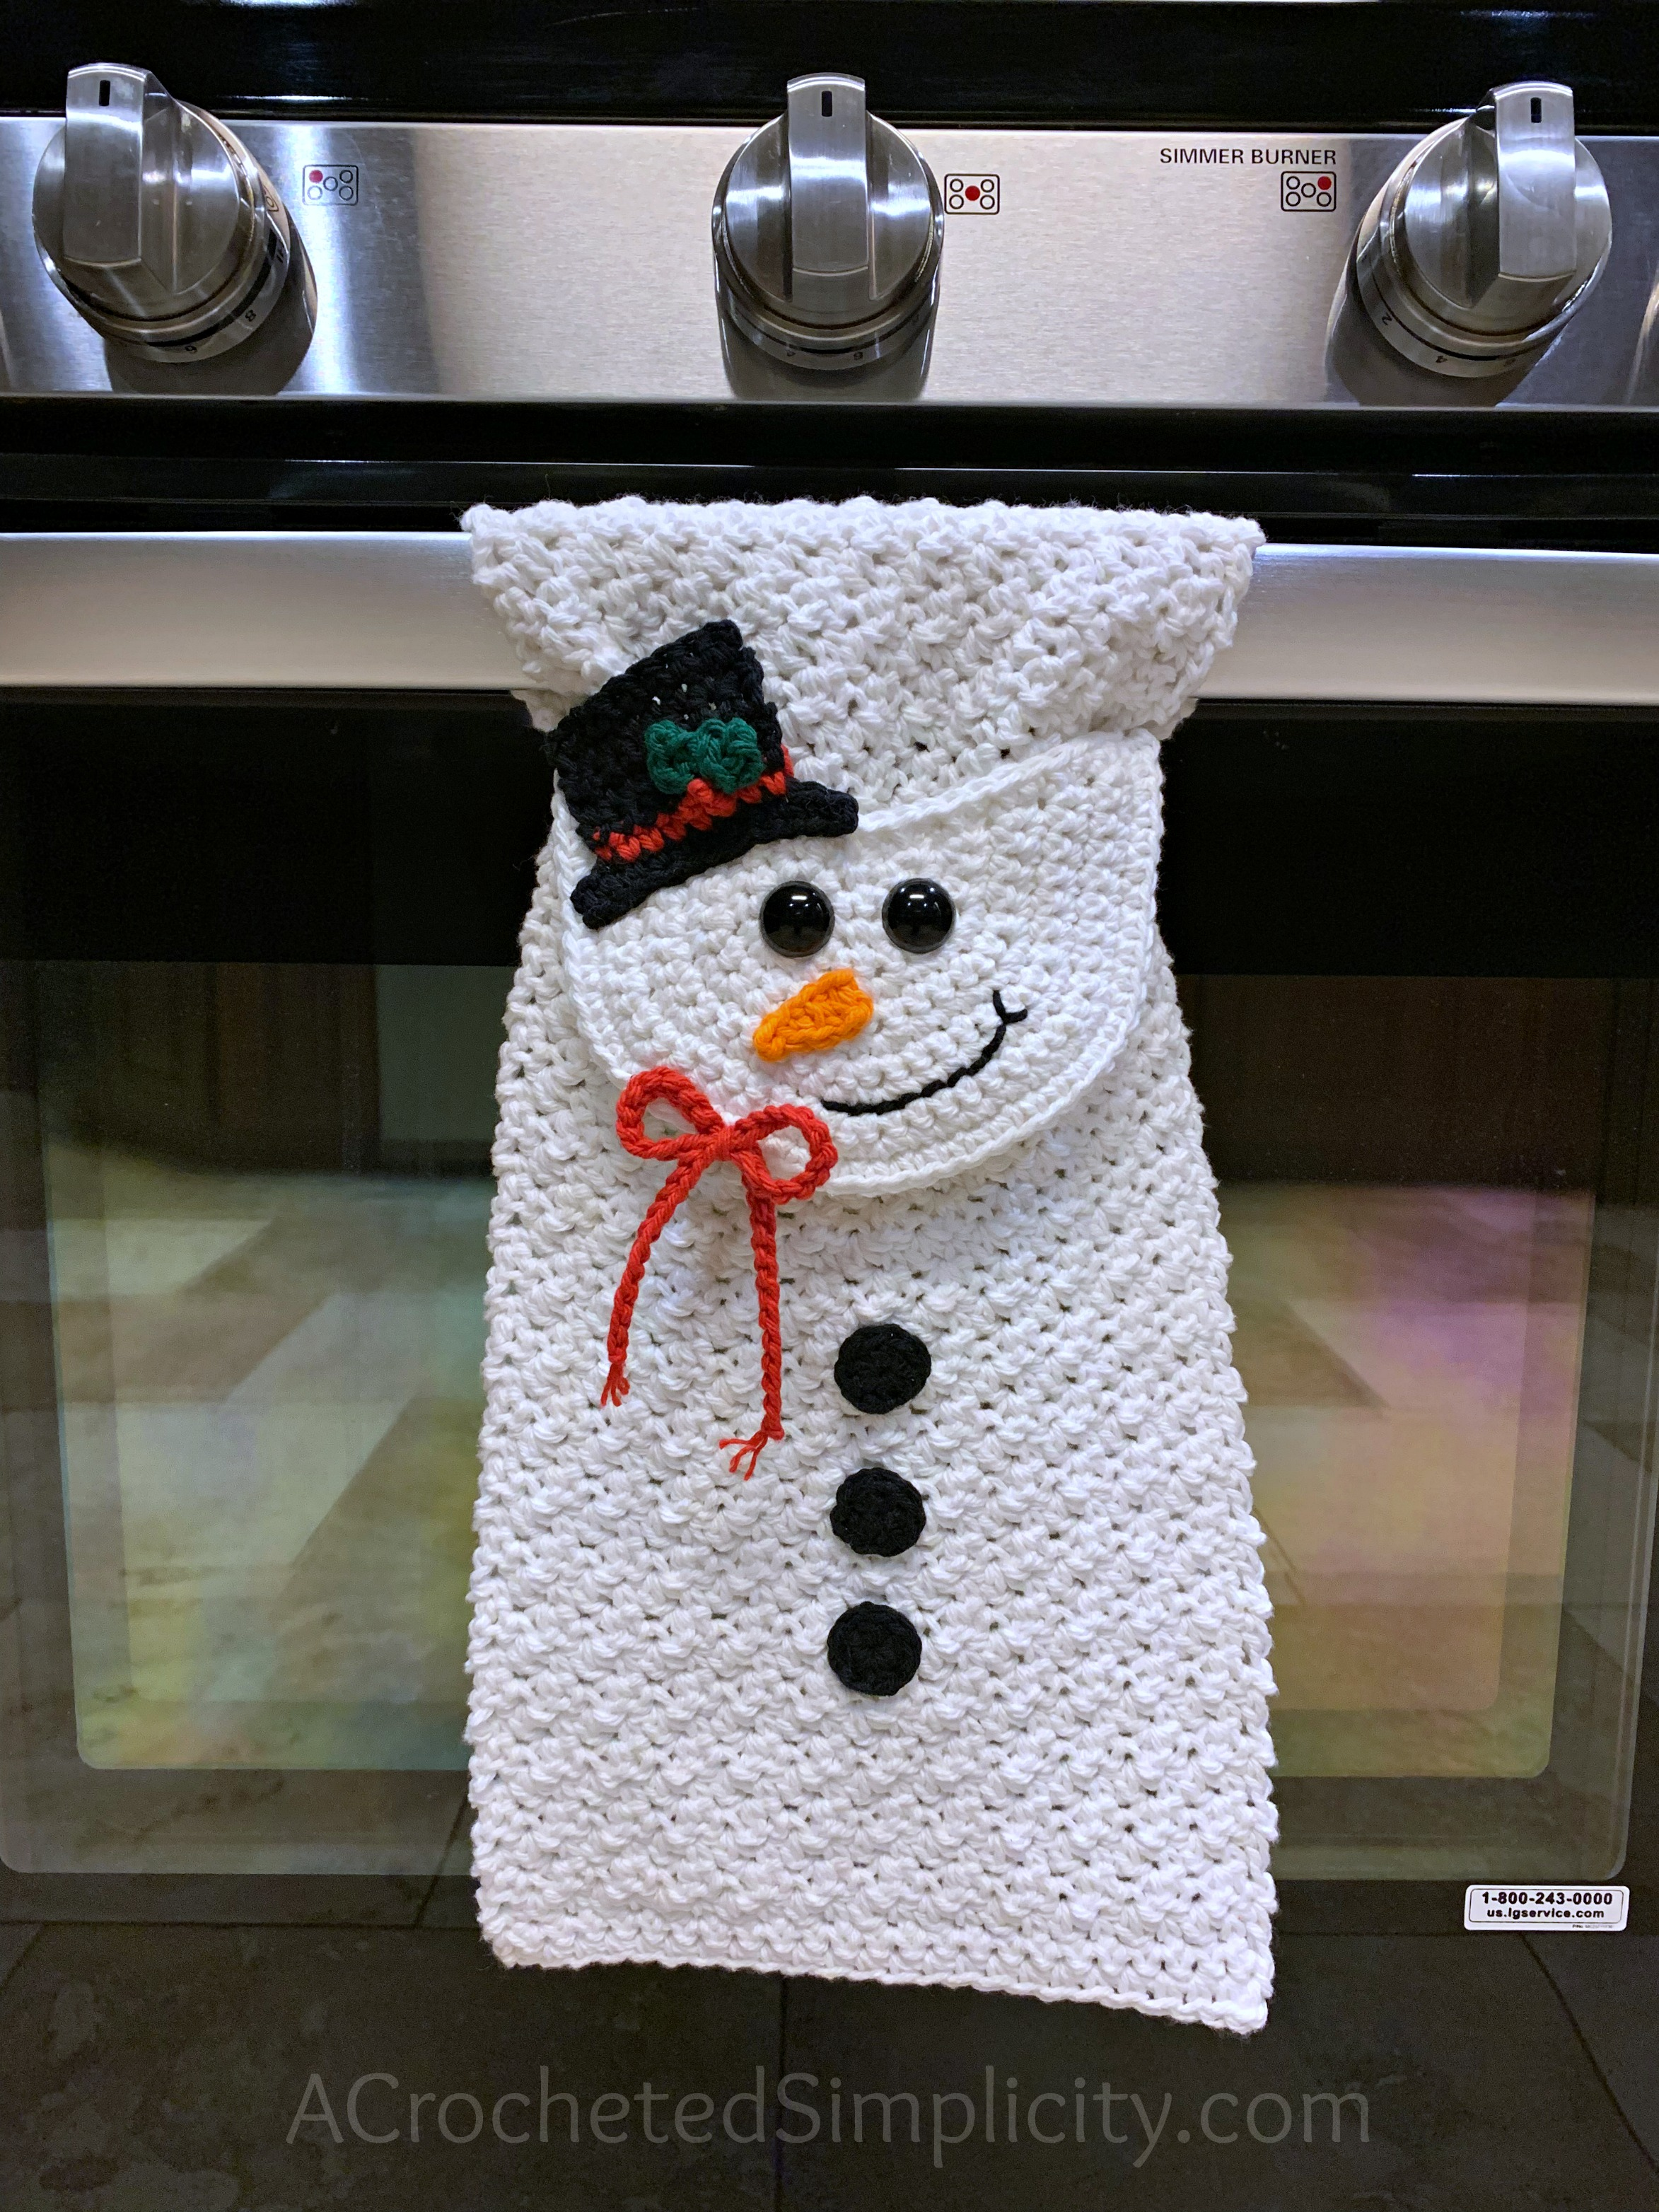 Free Crochet Pattern - Snowman Kitchen Towel by A Crocheted Simplicity #snowmantowel #freecrochetpattern #crochetdishtowel #crochetteatowel #crochetkitchentowel #christmastowel #christmascrochet #snowman #crochetsnowmman